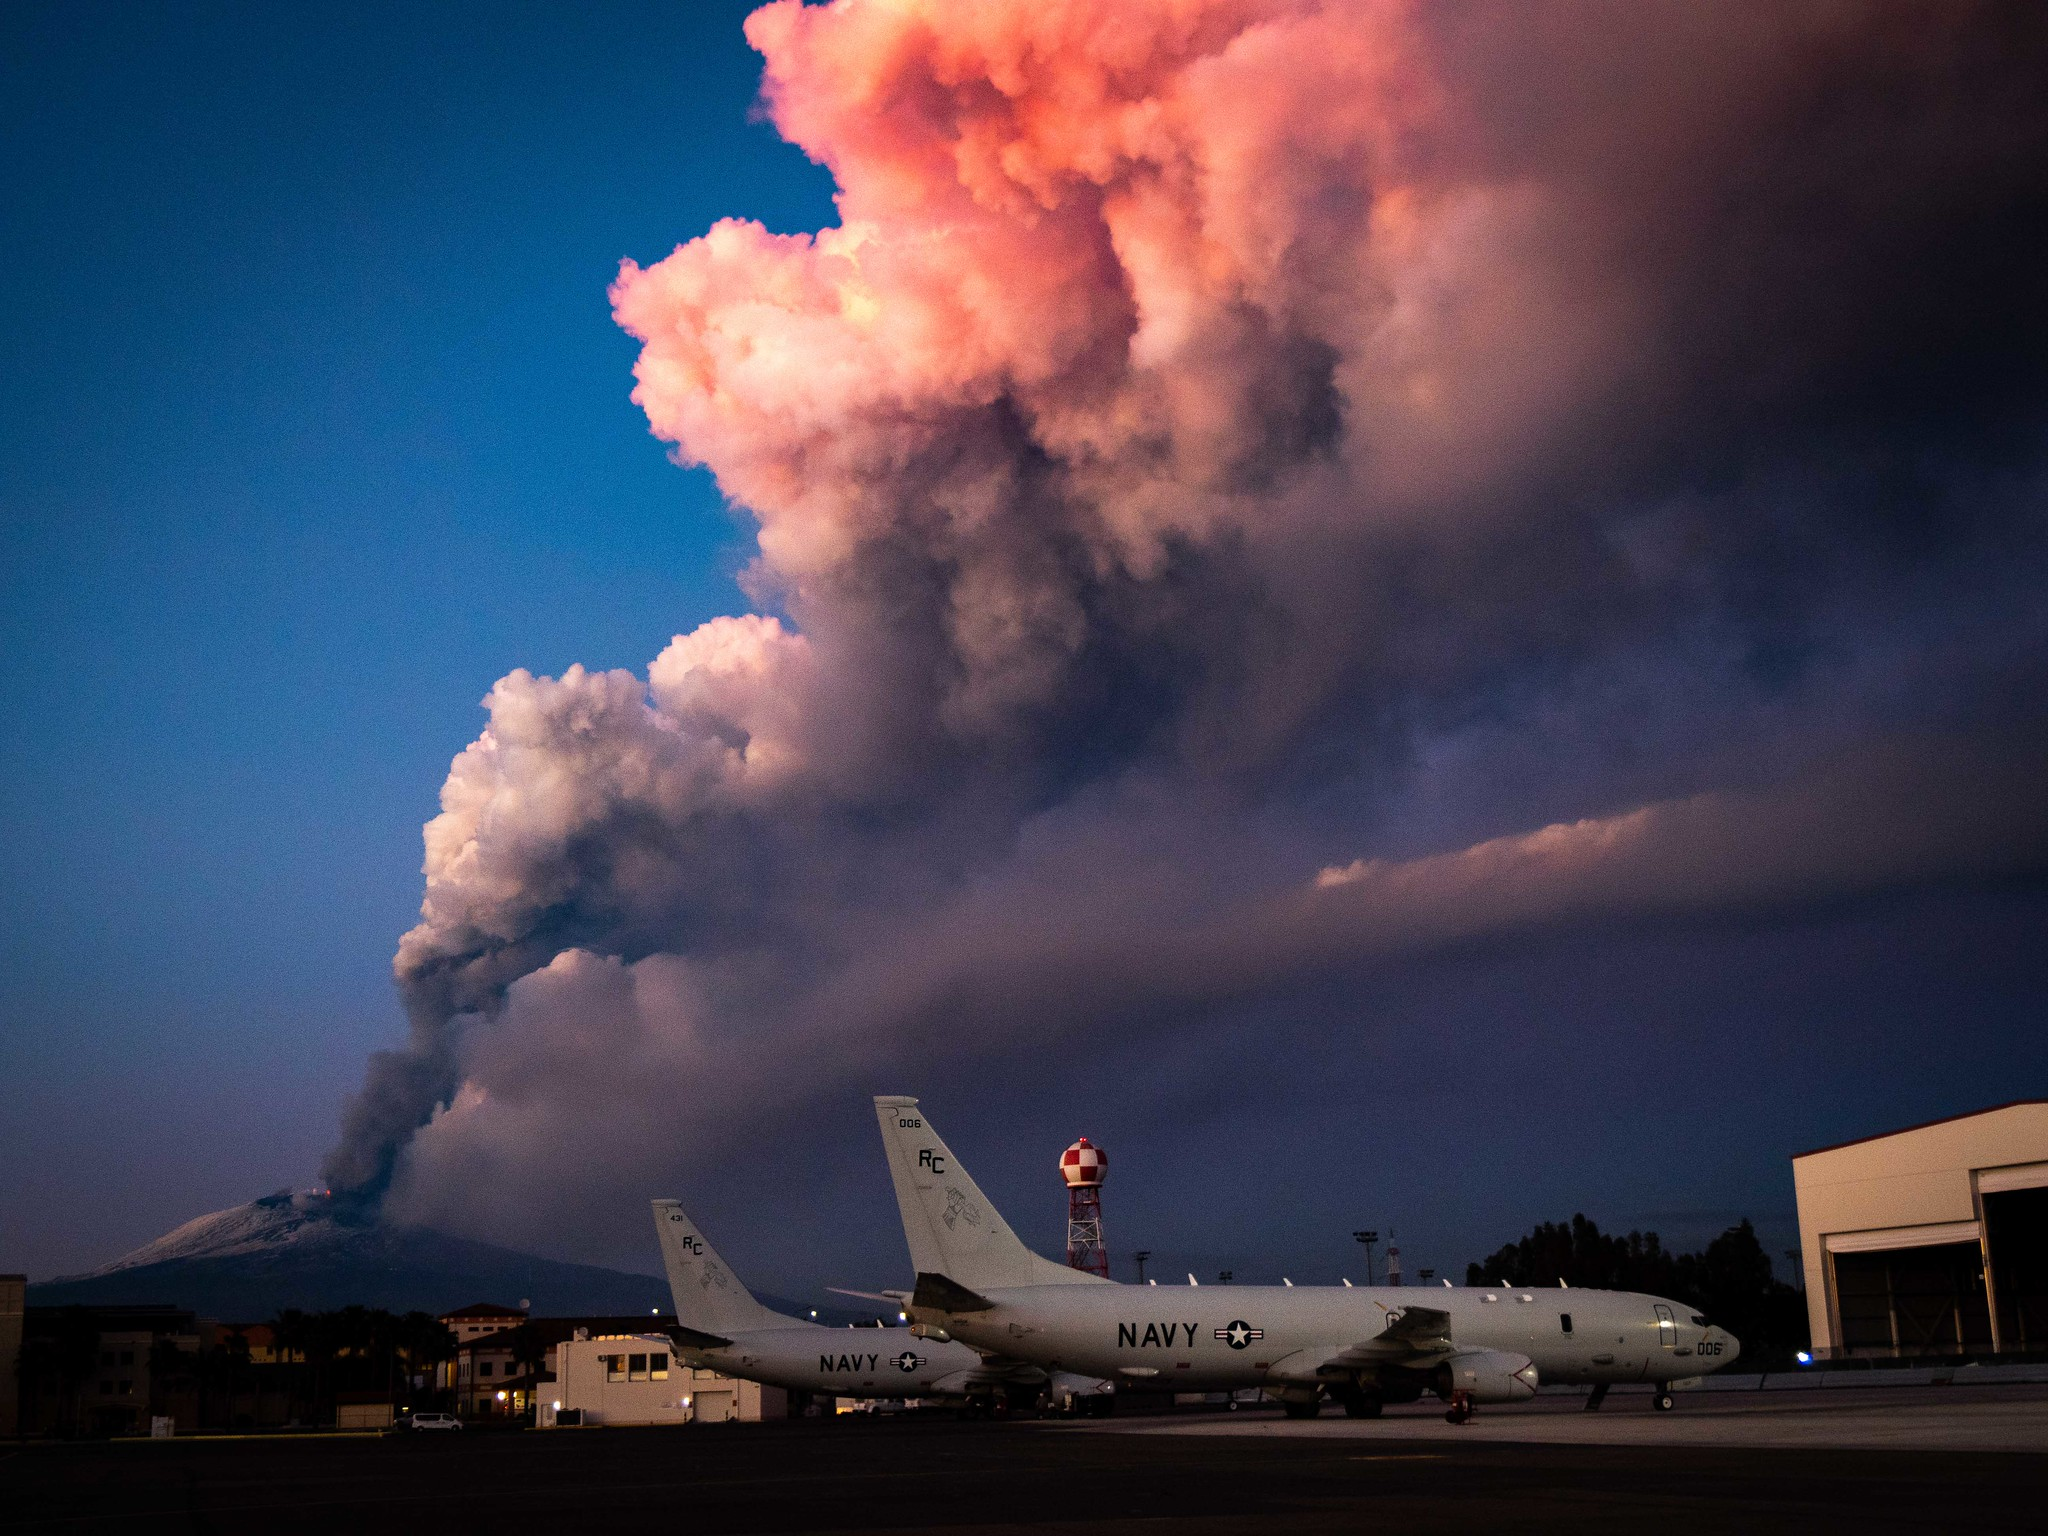 Mount Etna lets off some steam in the background of P-8A Poseidon maritime patrol aircraft Feb. 16, 2021, at Sigonella, Italy. (MC2 Austin Ingram/Navy)